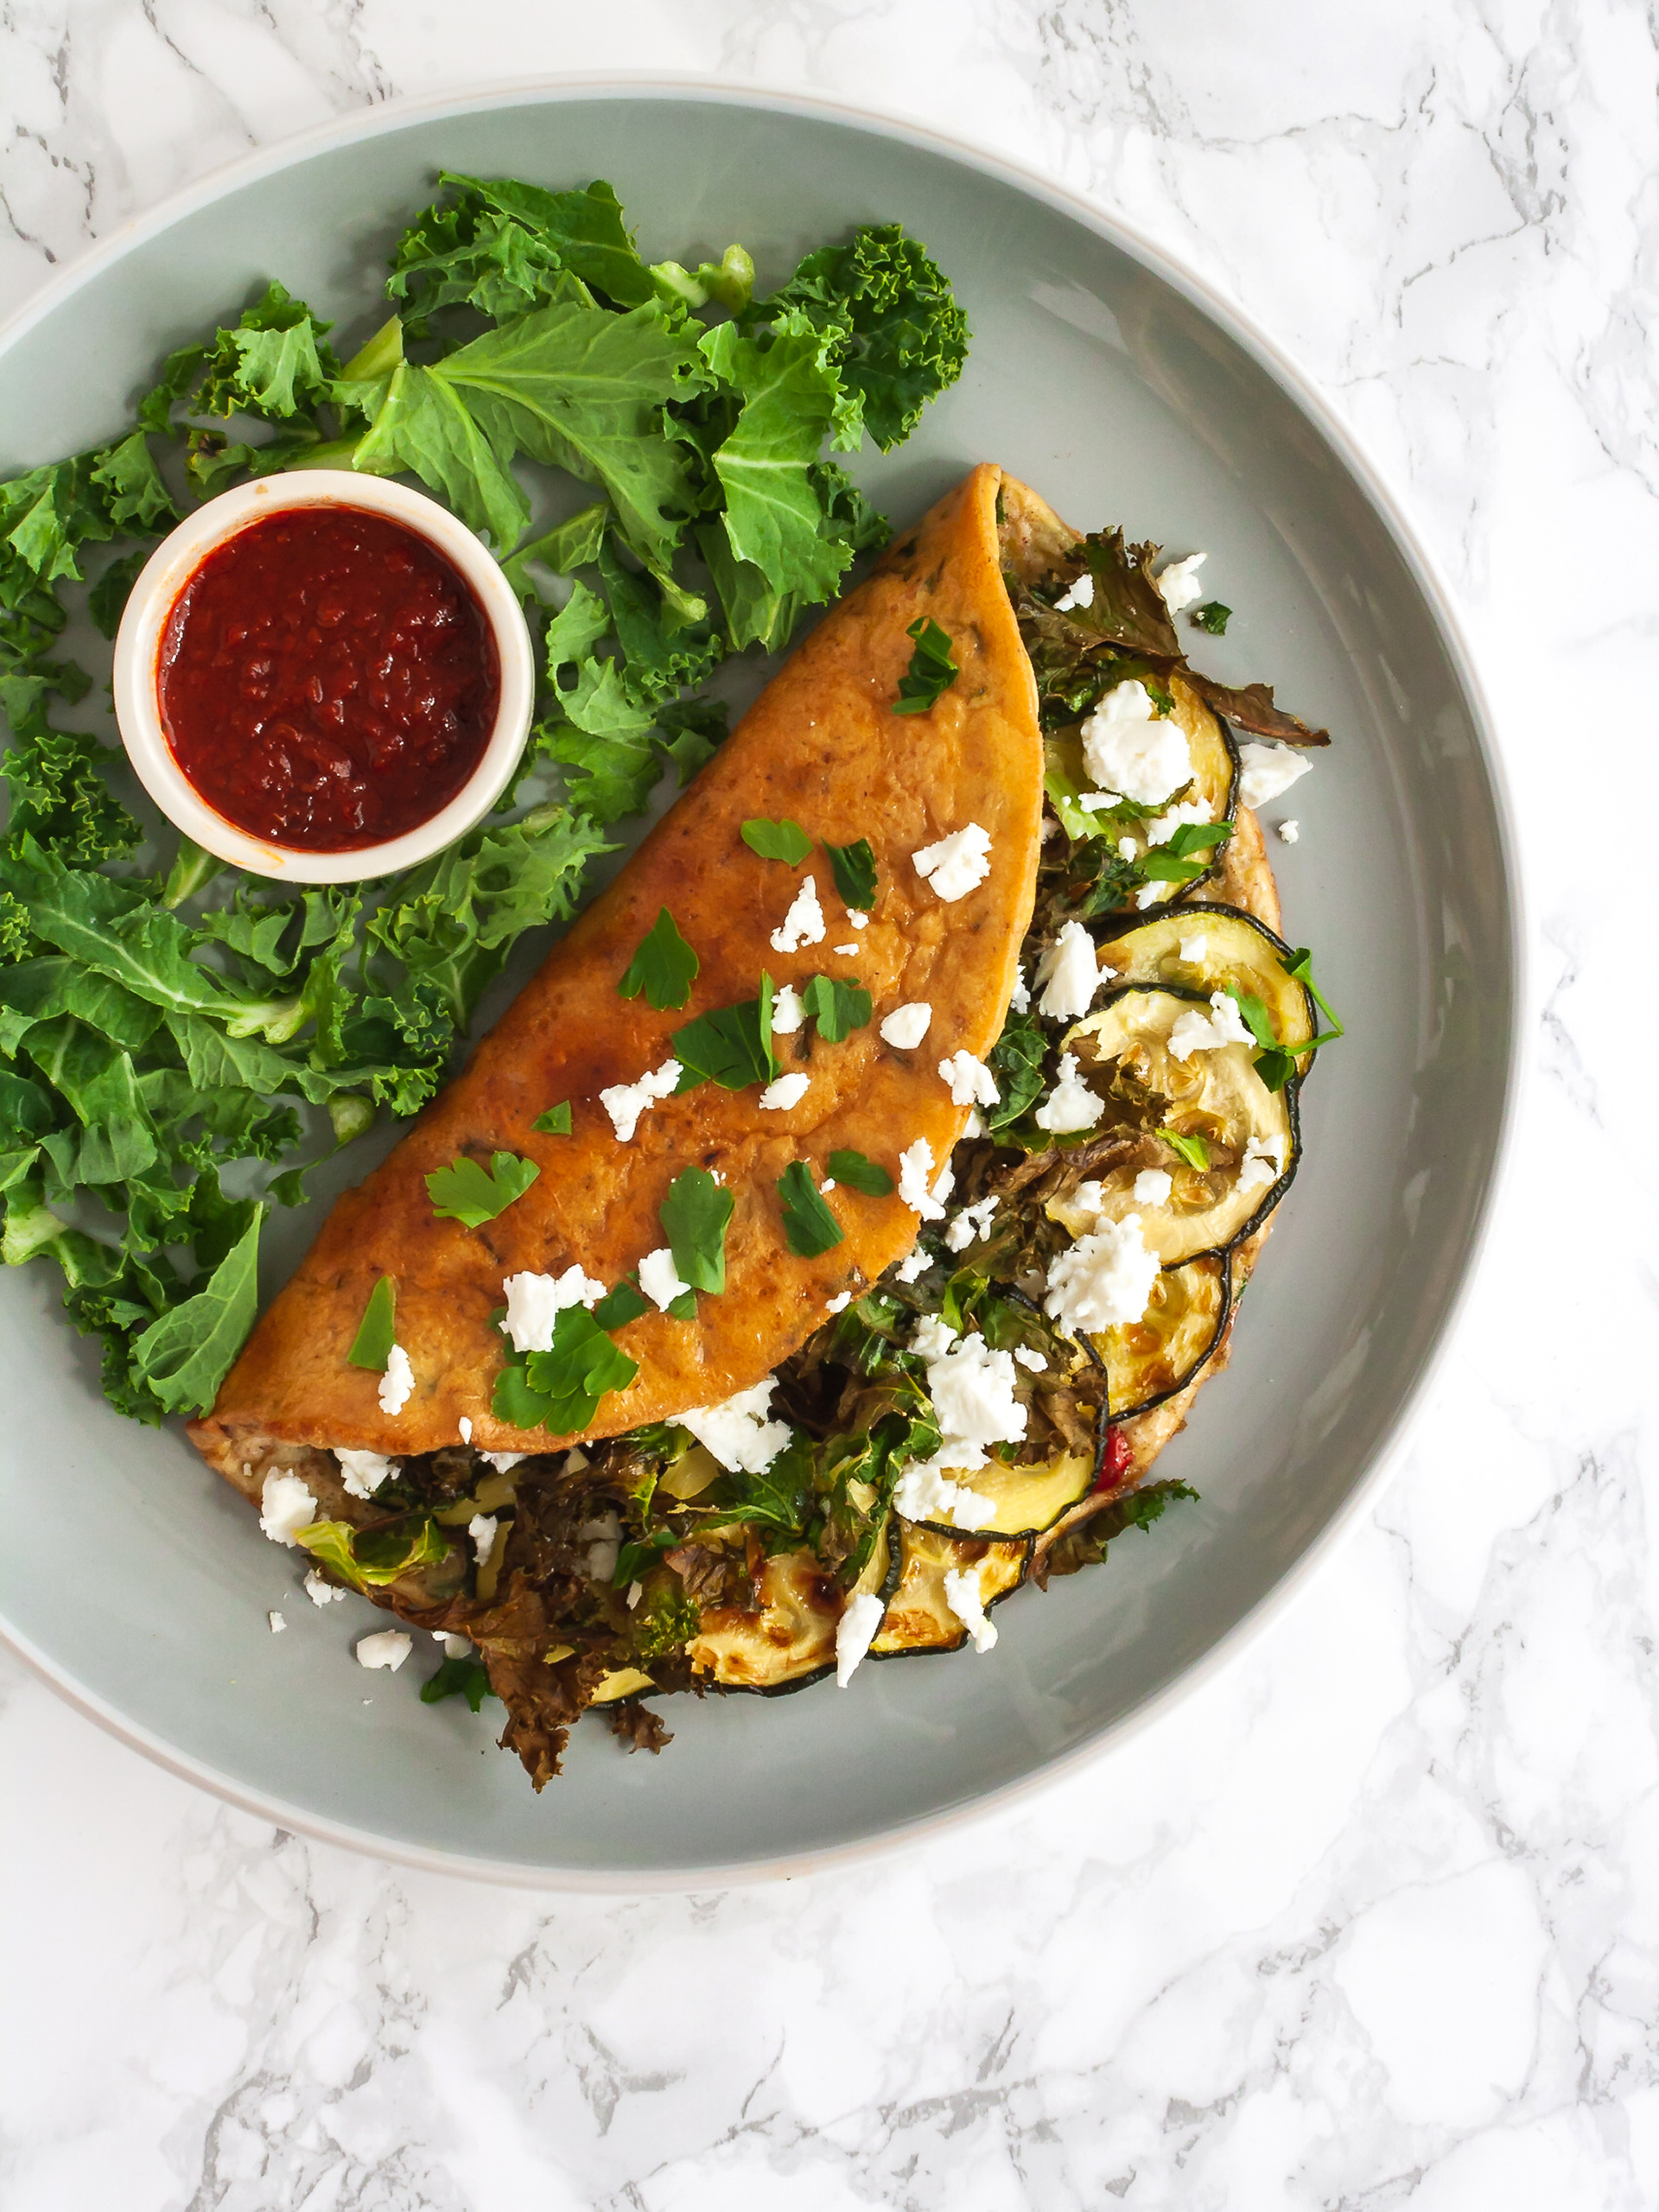 Keto Omelette with Kale Courgettes and Feta